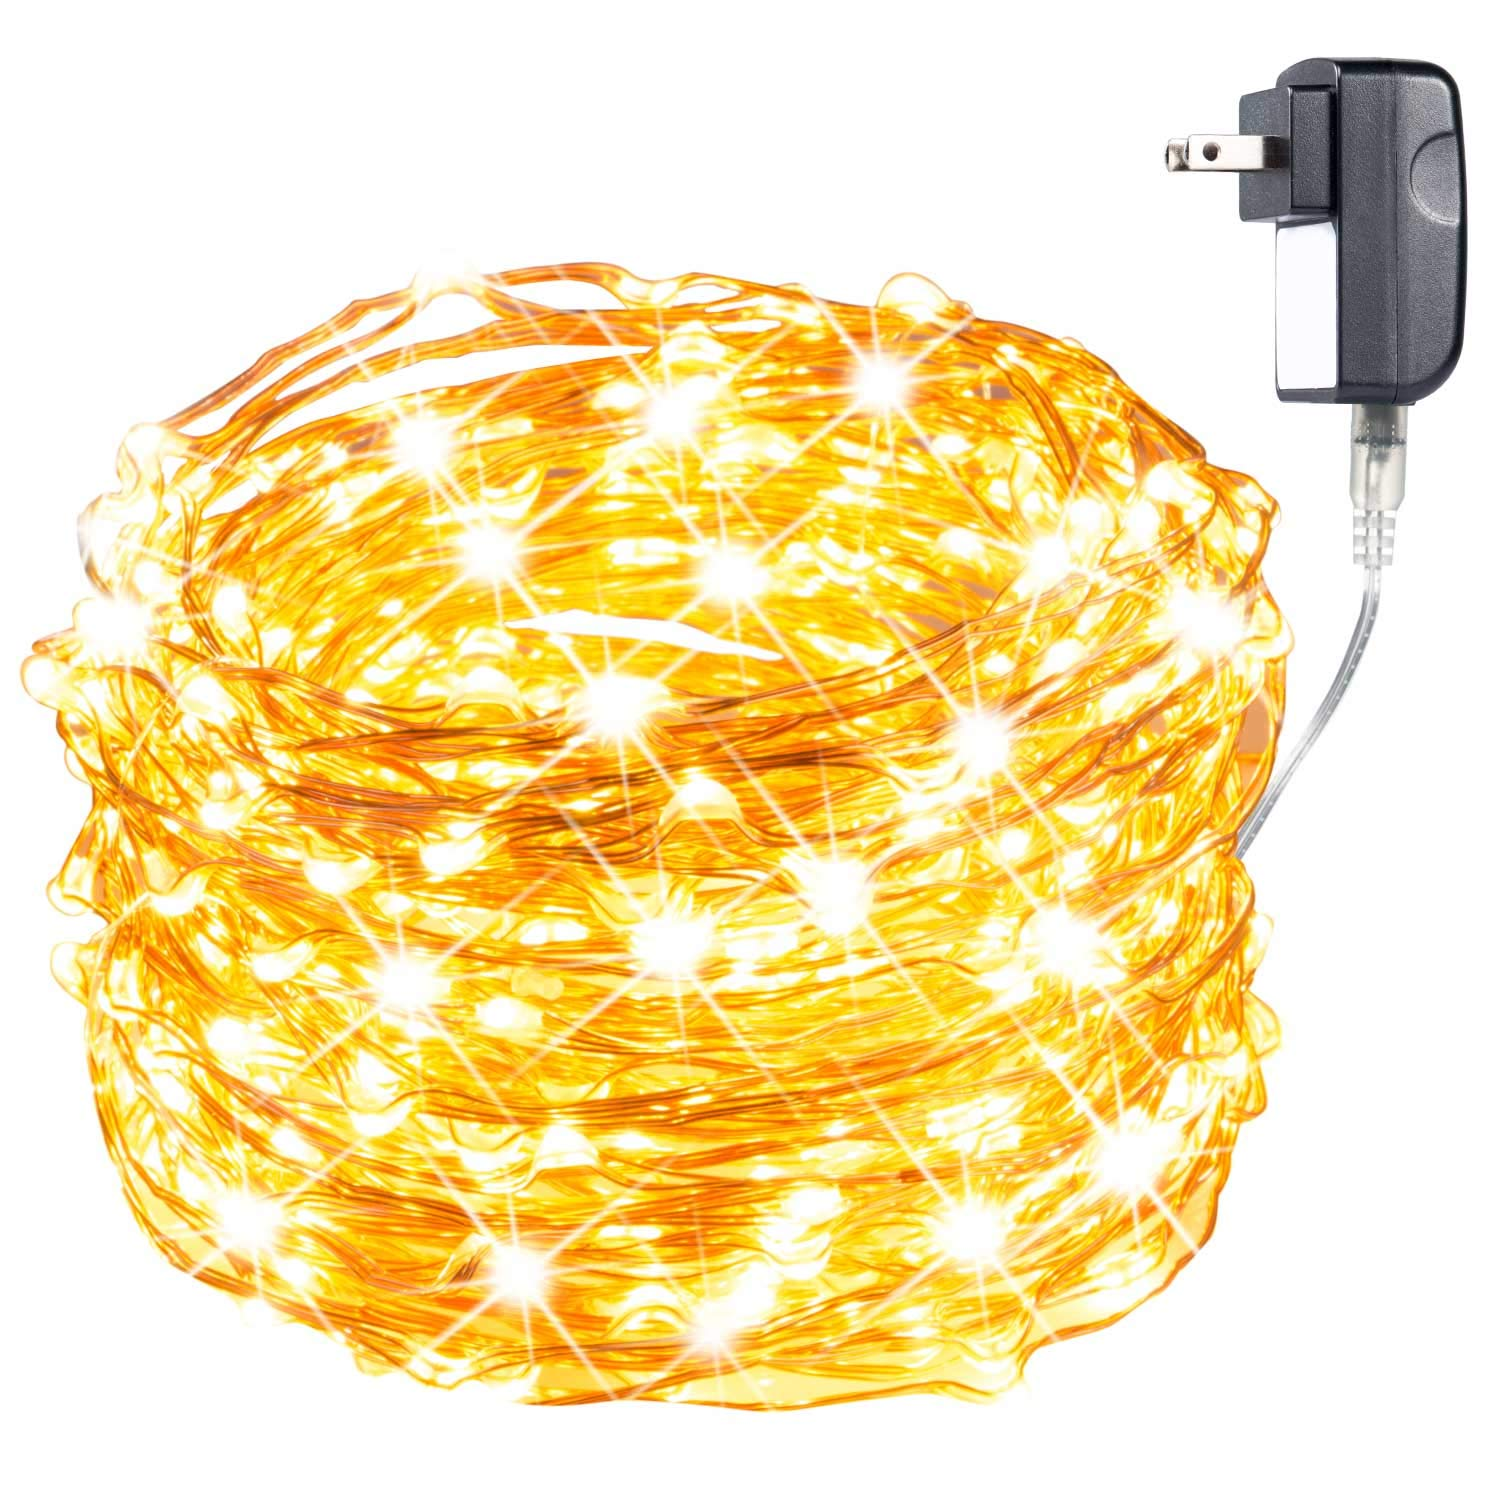 Amazon.com: Starry String Lights Warm White Color LED\'s on a ...